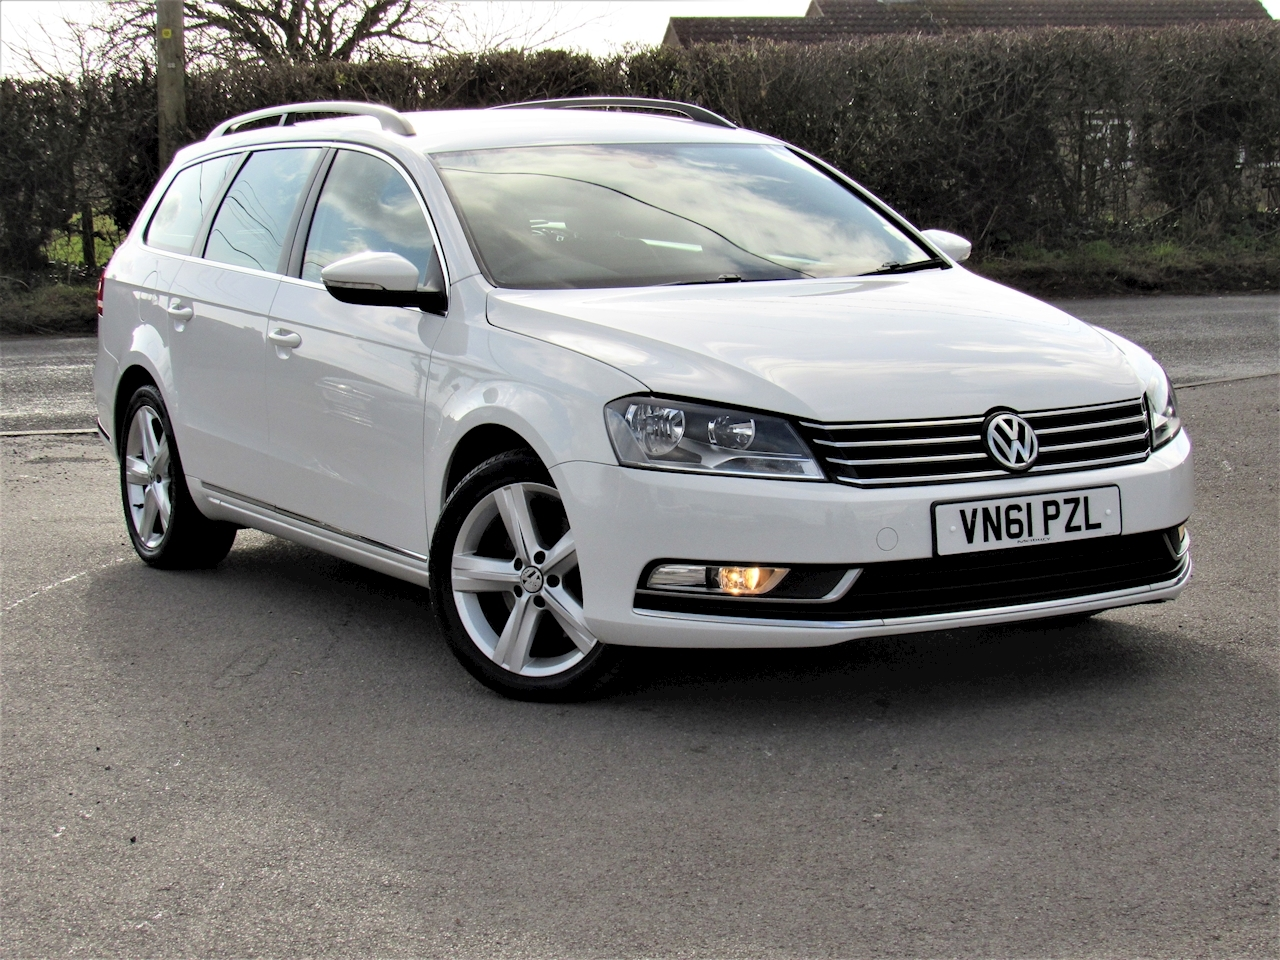 2.0 TDI BlueMotion Tech SE Estate 5dr Diesel Manual (120 g/km, 138 bhp)